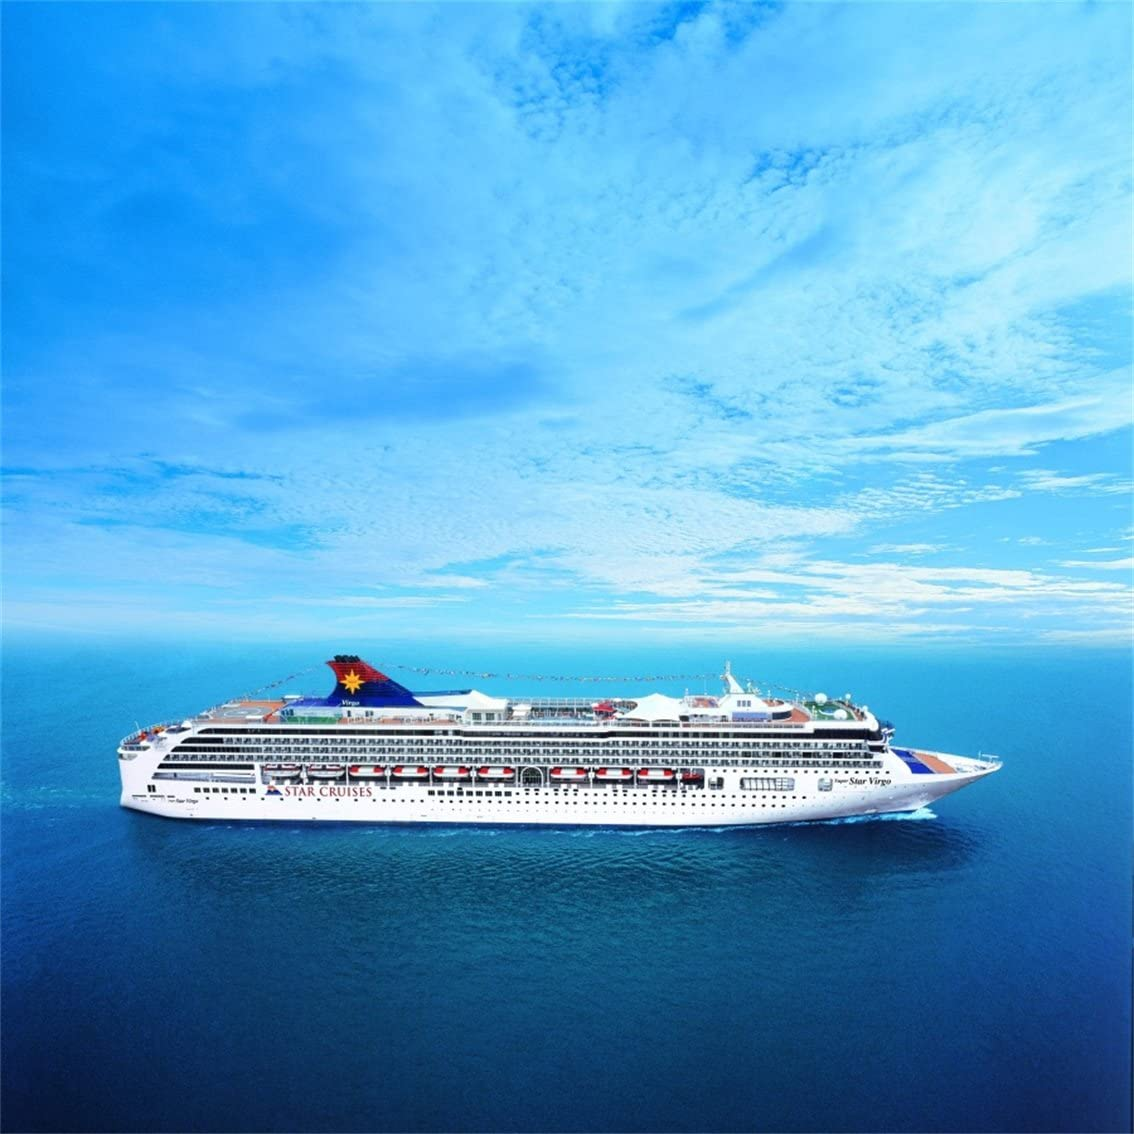 Amazon Com Csfoto 4x4ft Luxury Cruise Ship Seascape Background Beautiful Scenery Holiday Photography Backdrop Tourism Ocean Sea Blue Sky Relax Studio Props Artistic Portrait Wallpaper Camera Photo